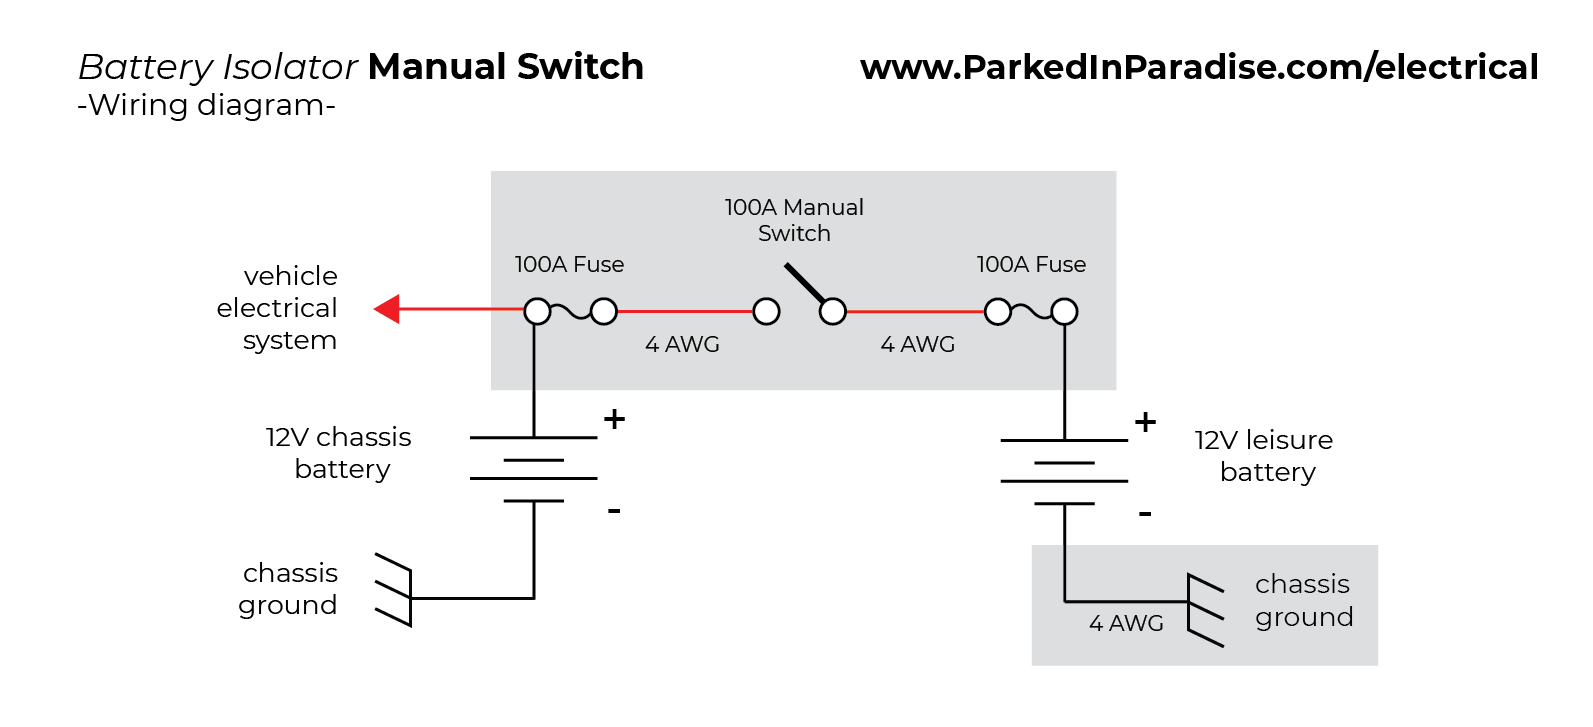 battery isolator wiring diagram 83 virago 500 how to install a in your conversion van parked manual switch diagrampurchase